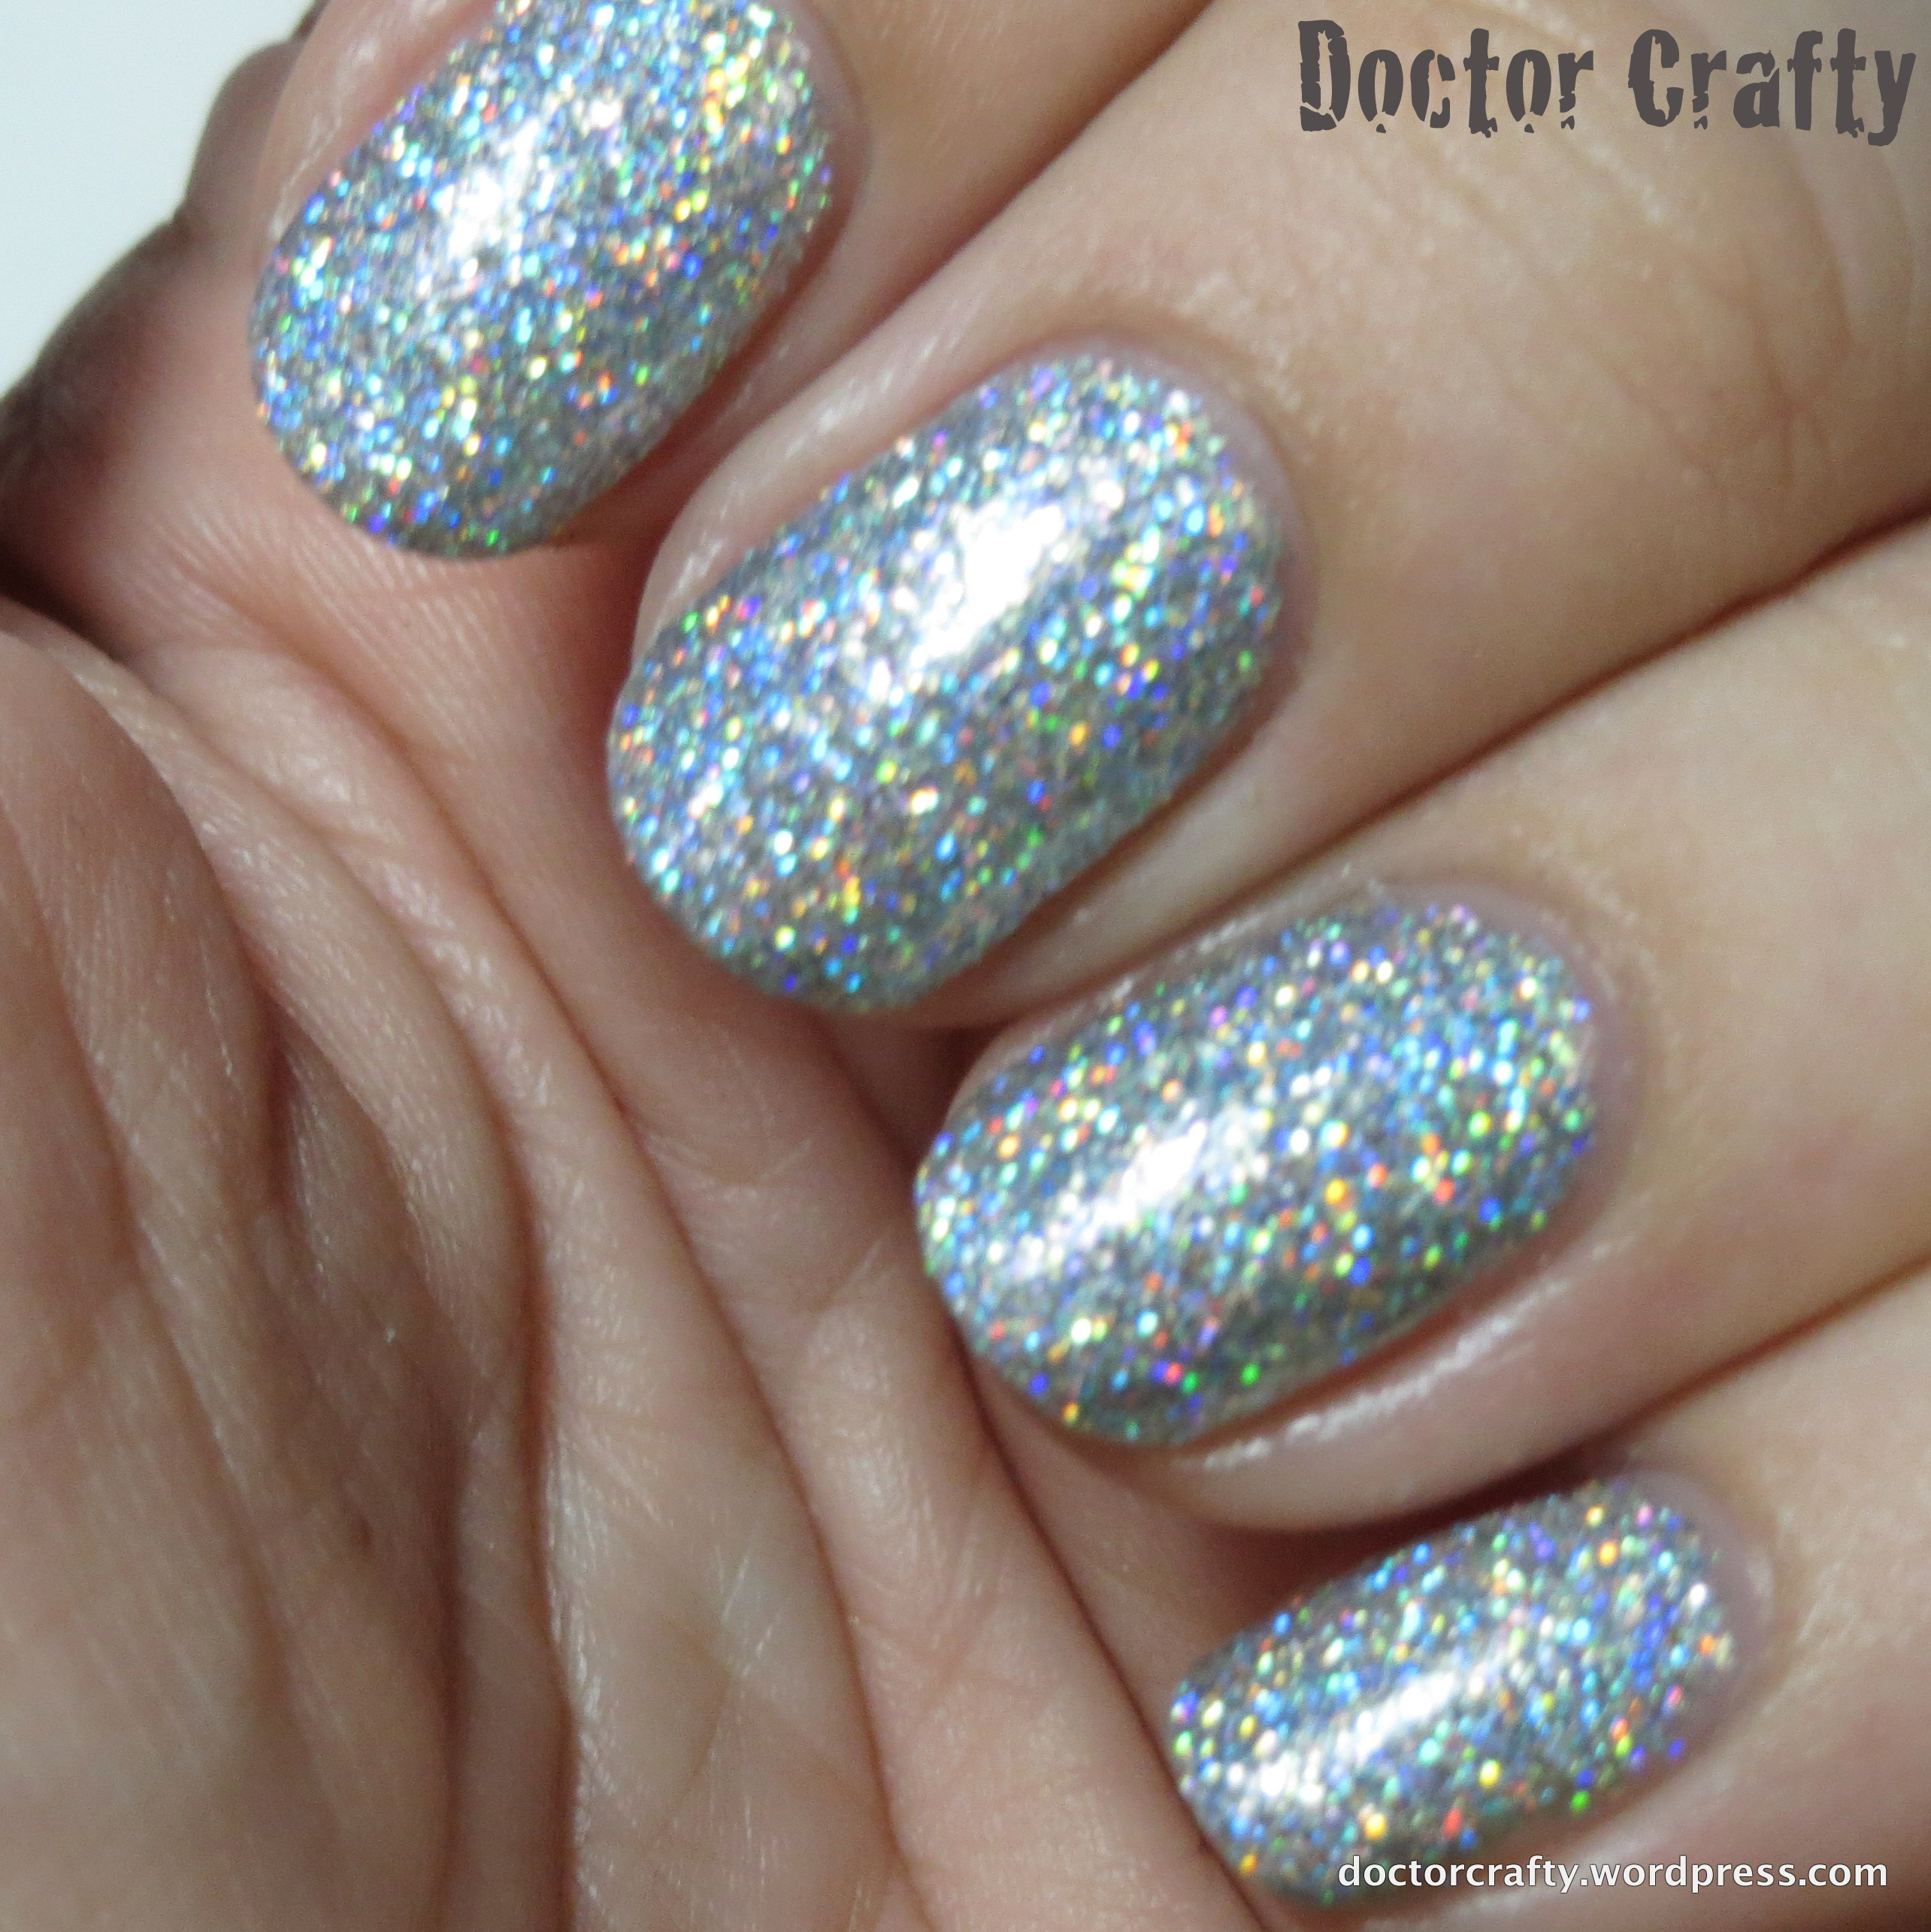 fun lacquer 24 karat diamond | Doctor Crafty